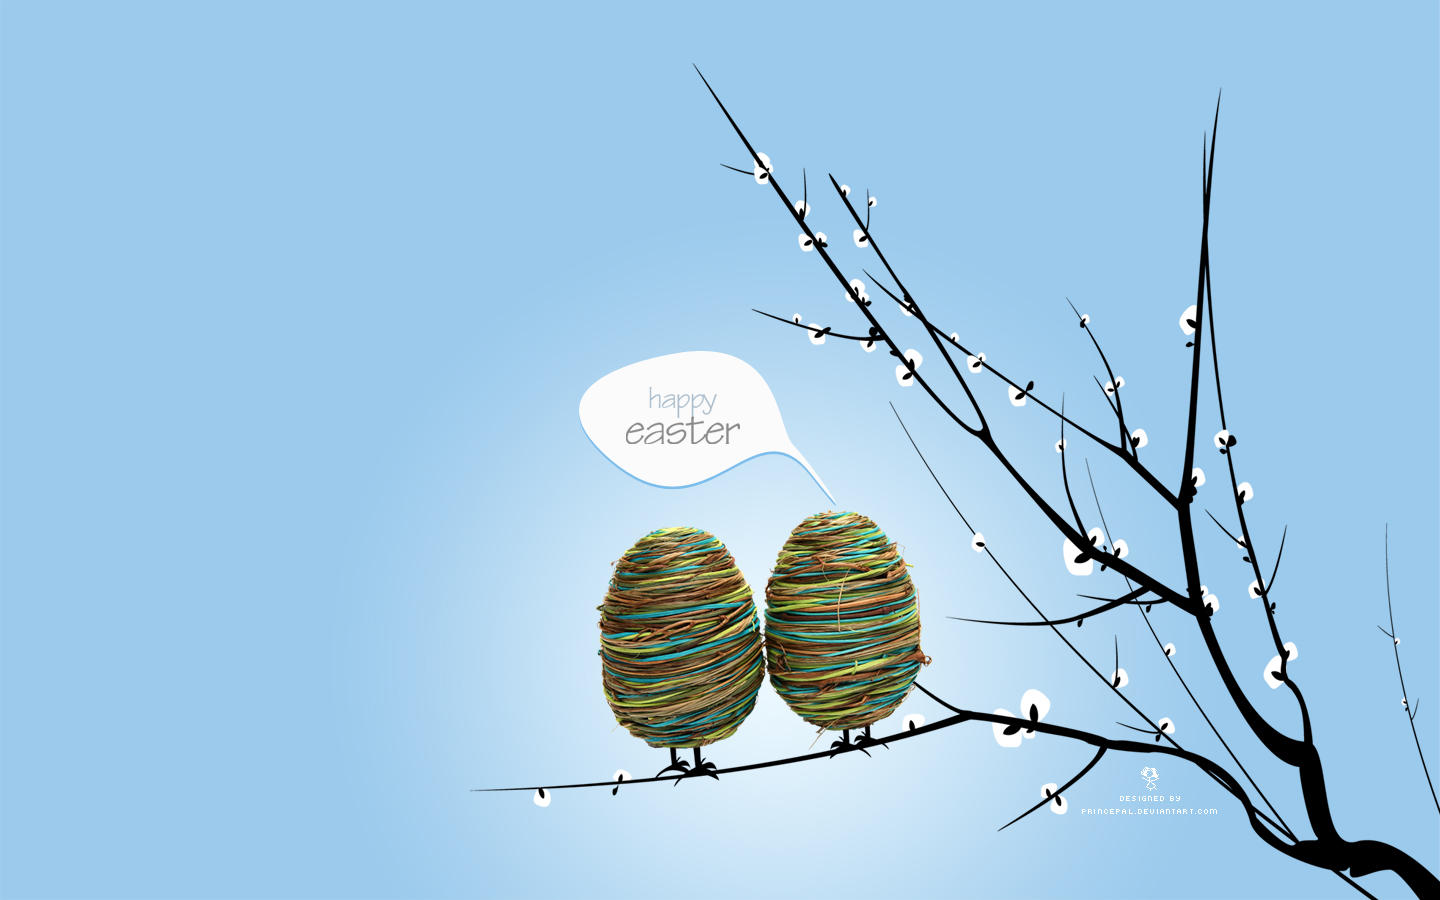 Happy Easter - Wallpaper Pack by princepal